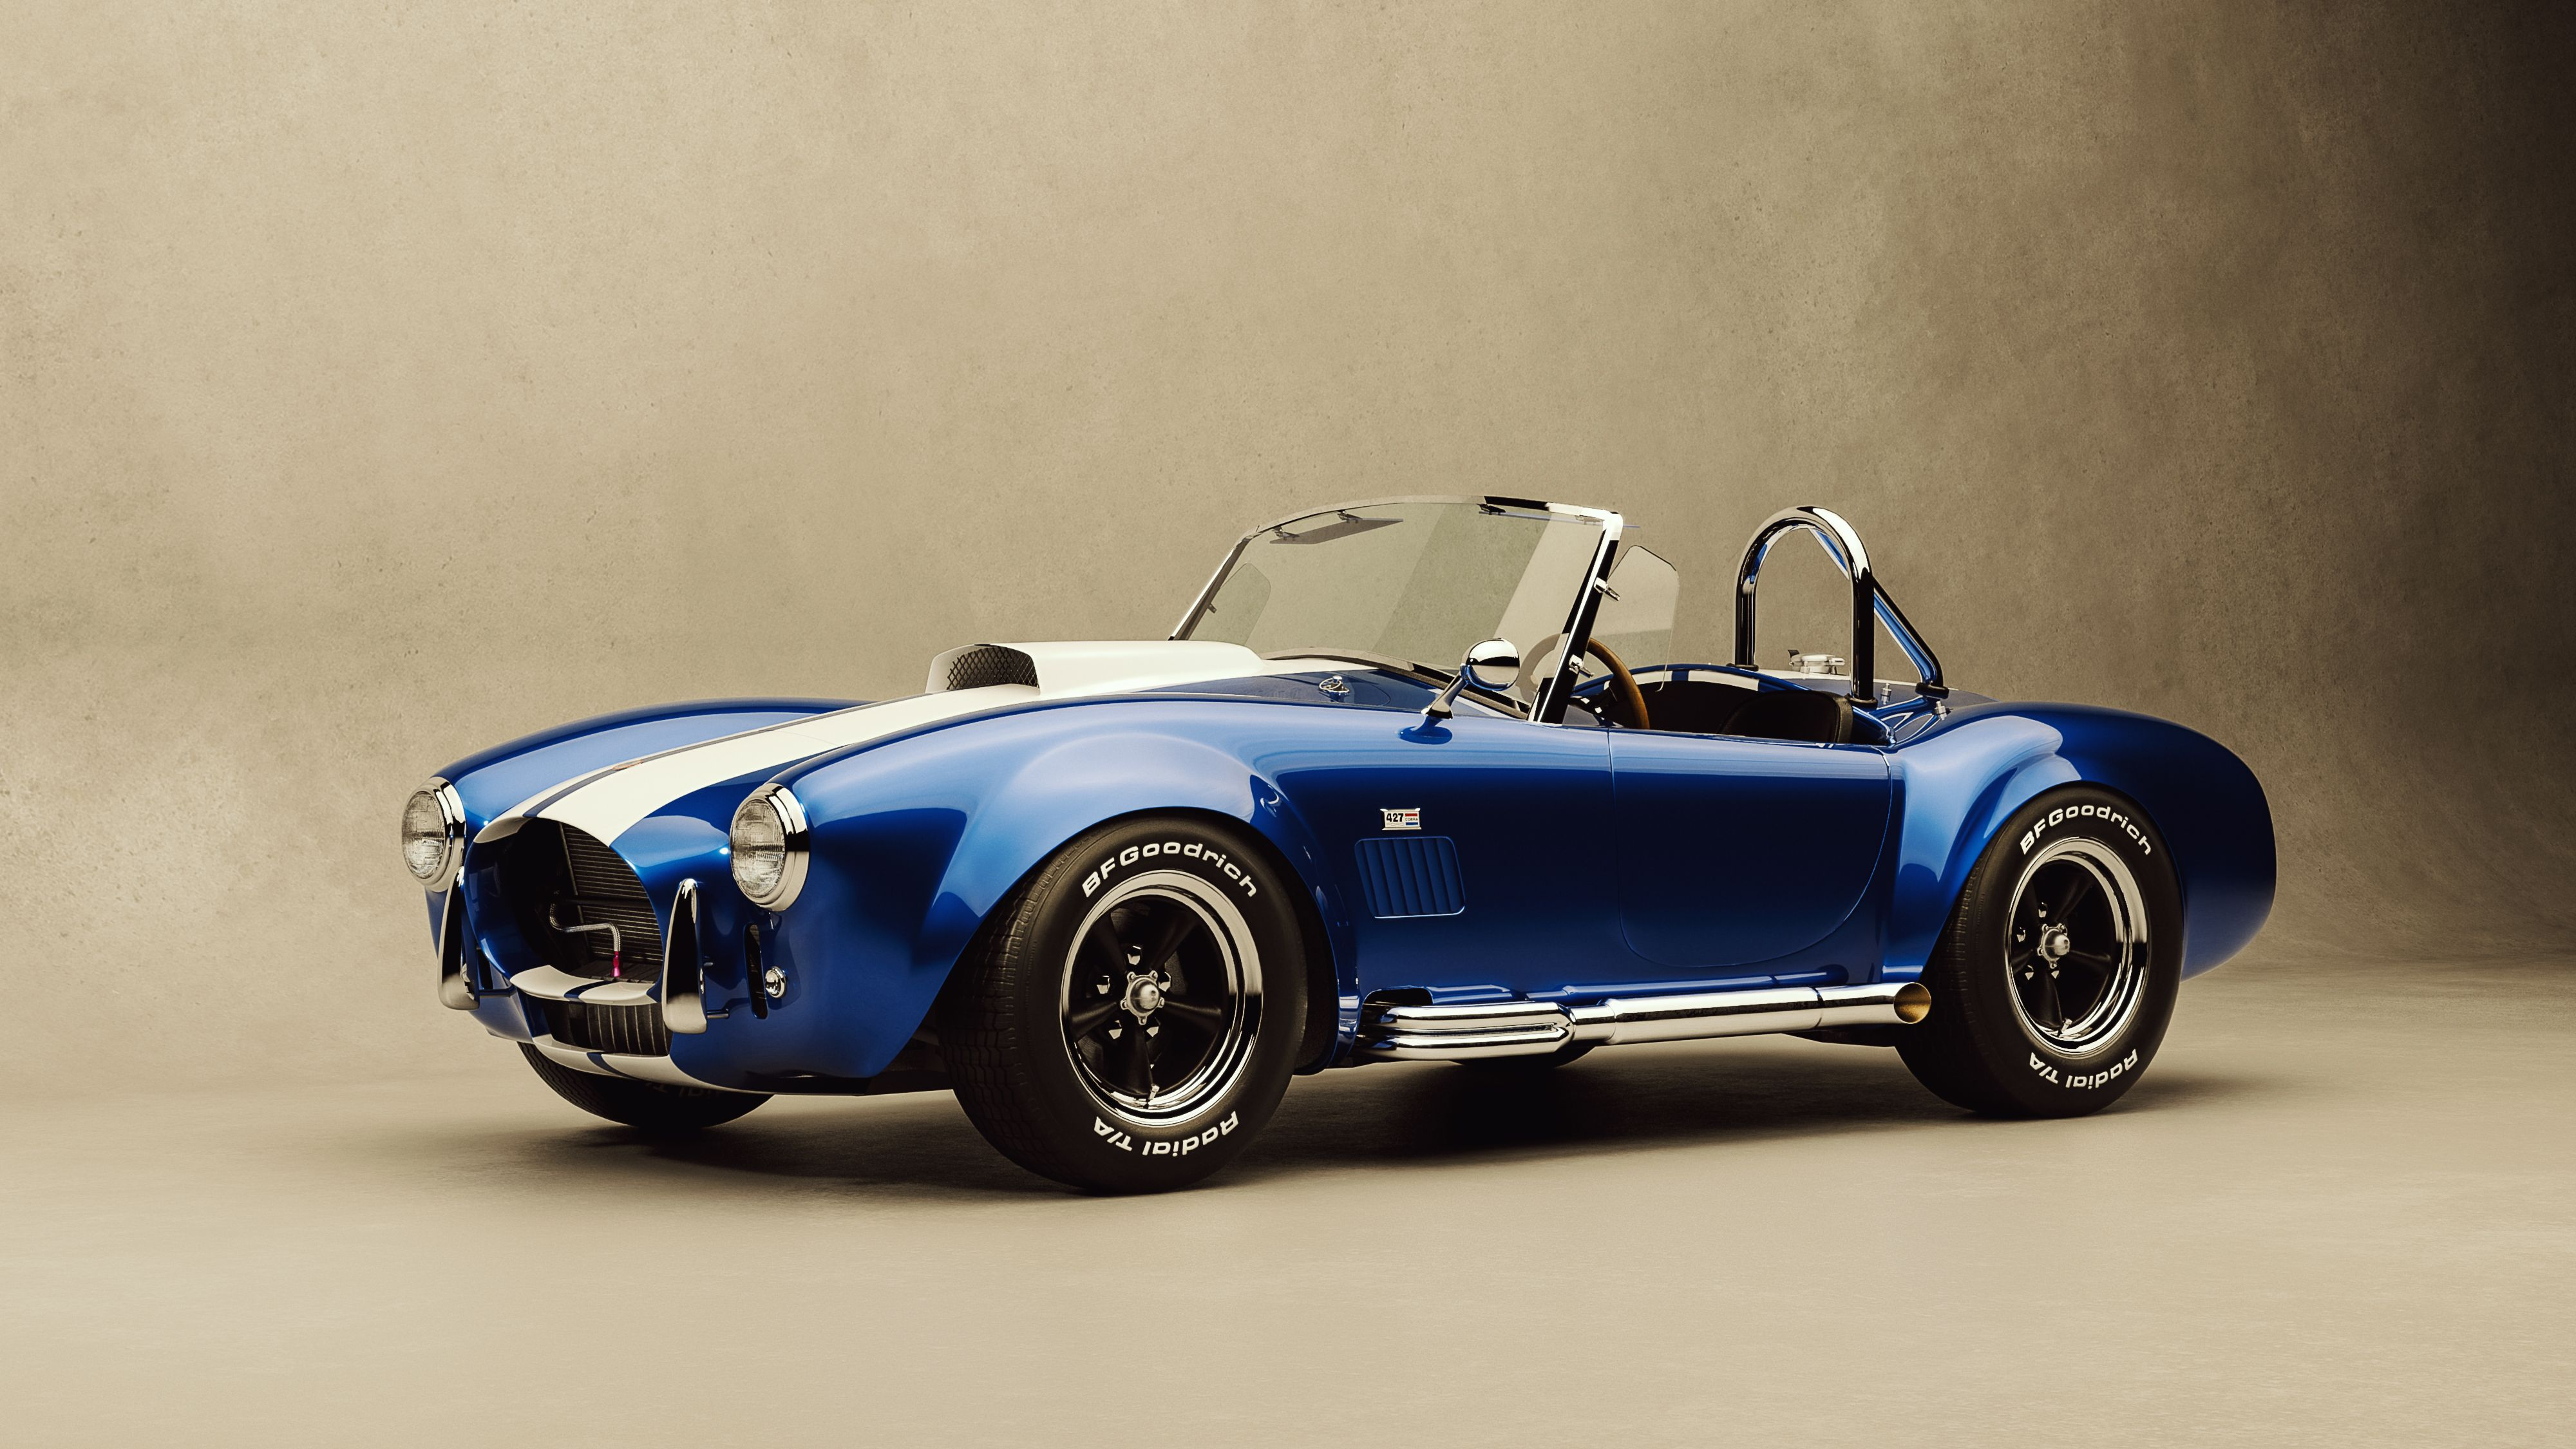 Shelby Cobra 427 1965 By Laffonte On Deviantart Ford Shelby